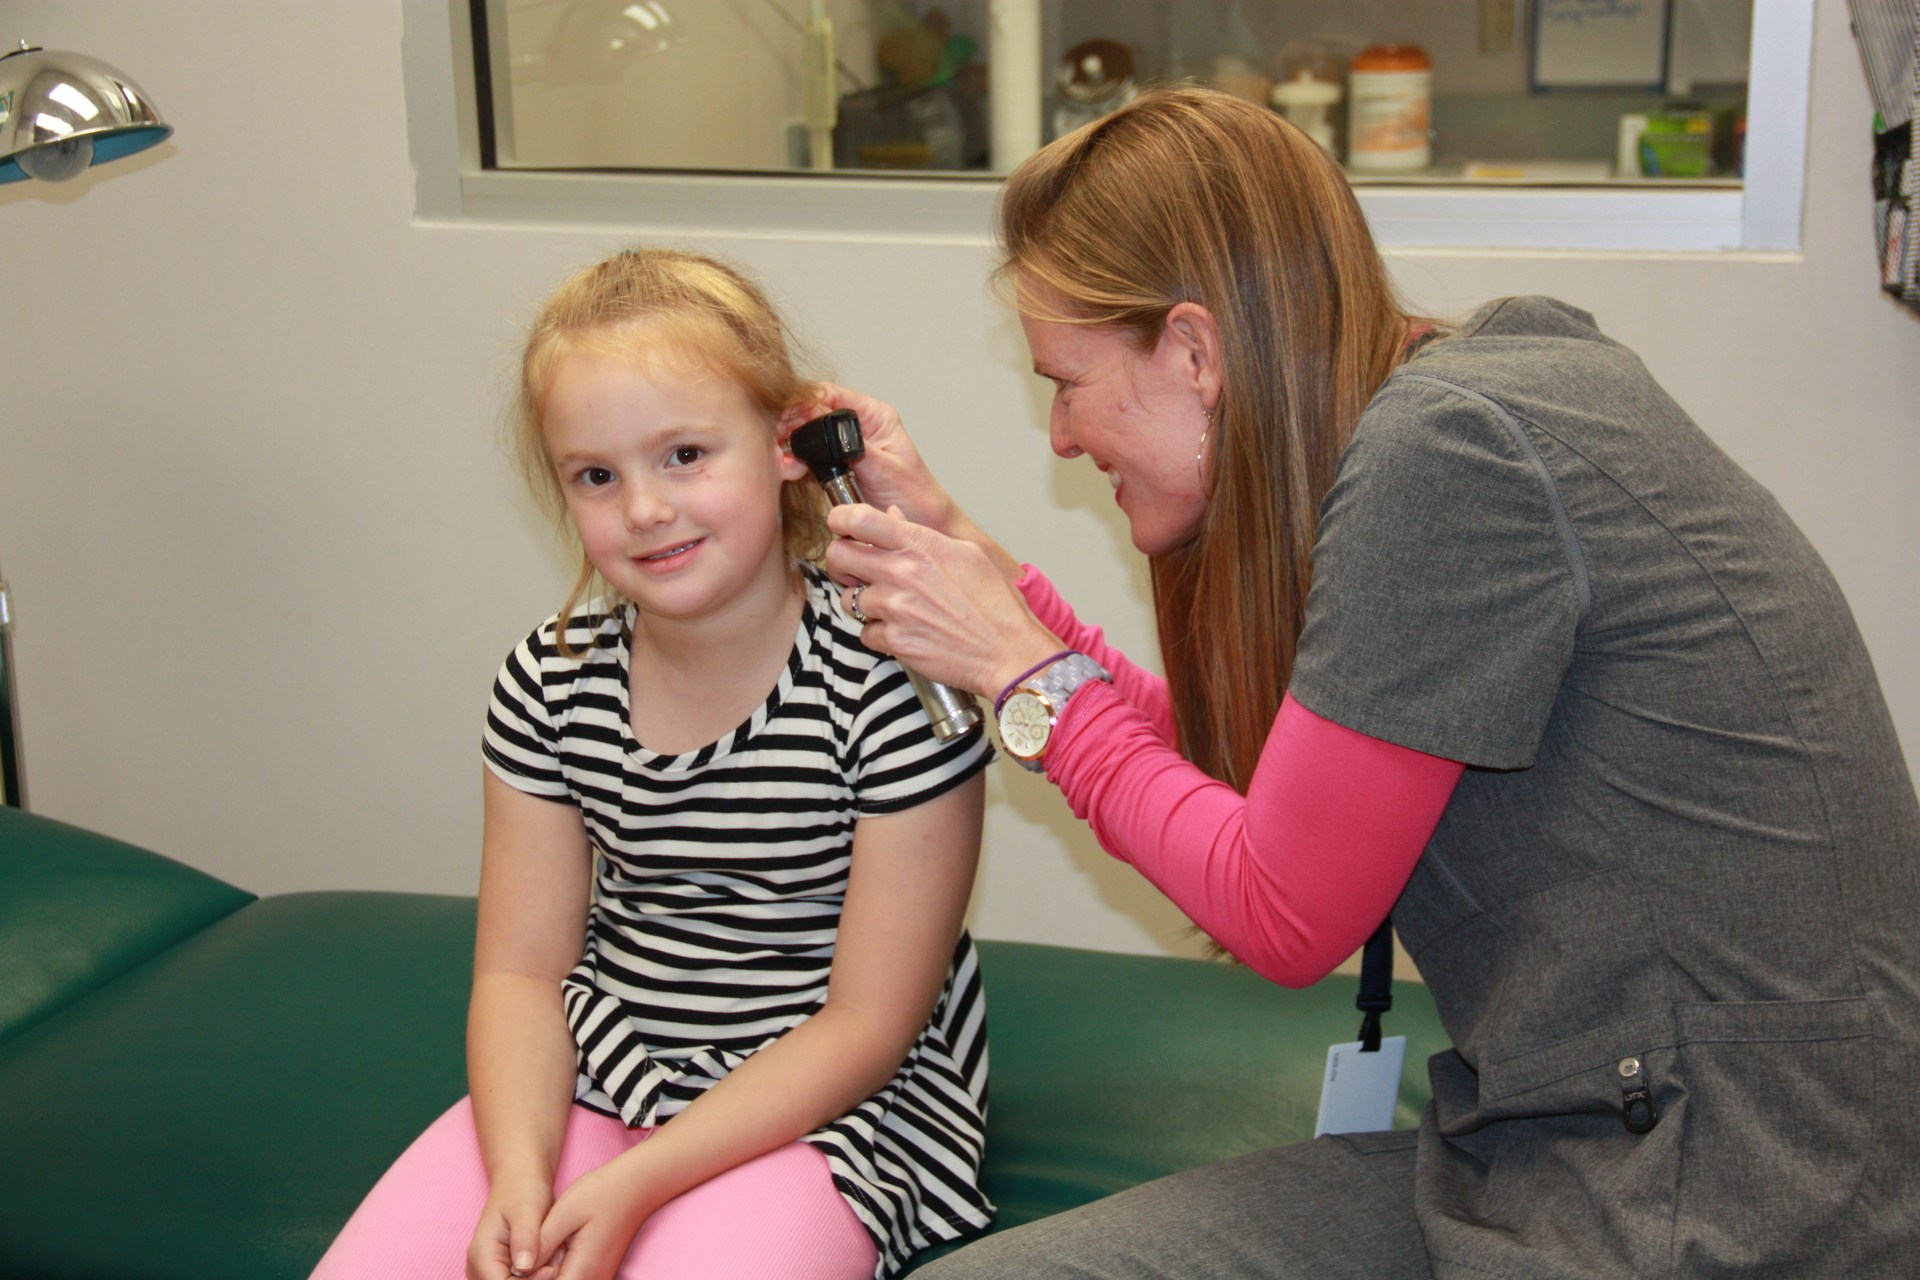 An Elementary School Nurse checks the ears of one student in the campus clinic